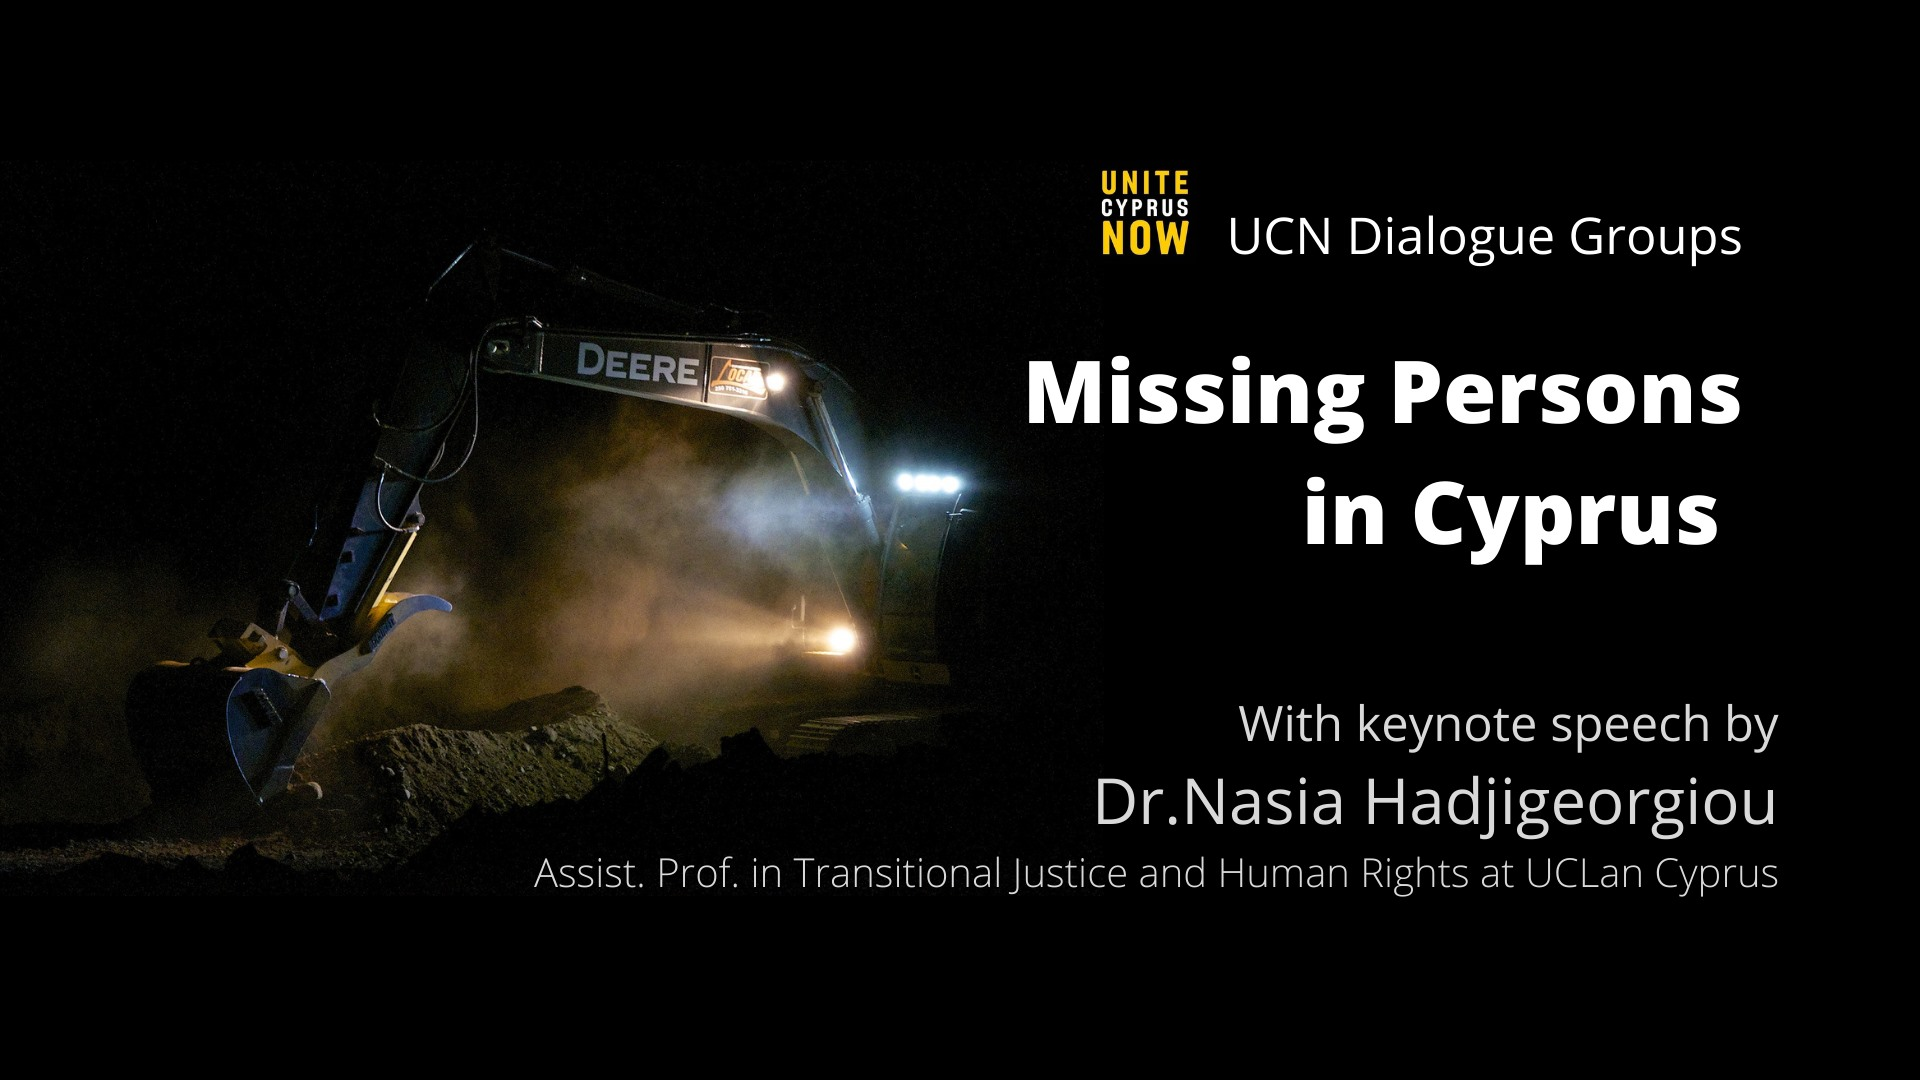 UCN dialogue group missing persons in Cyprus